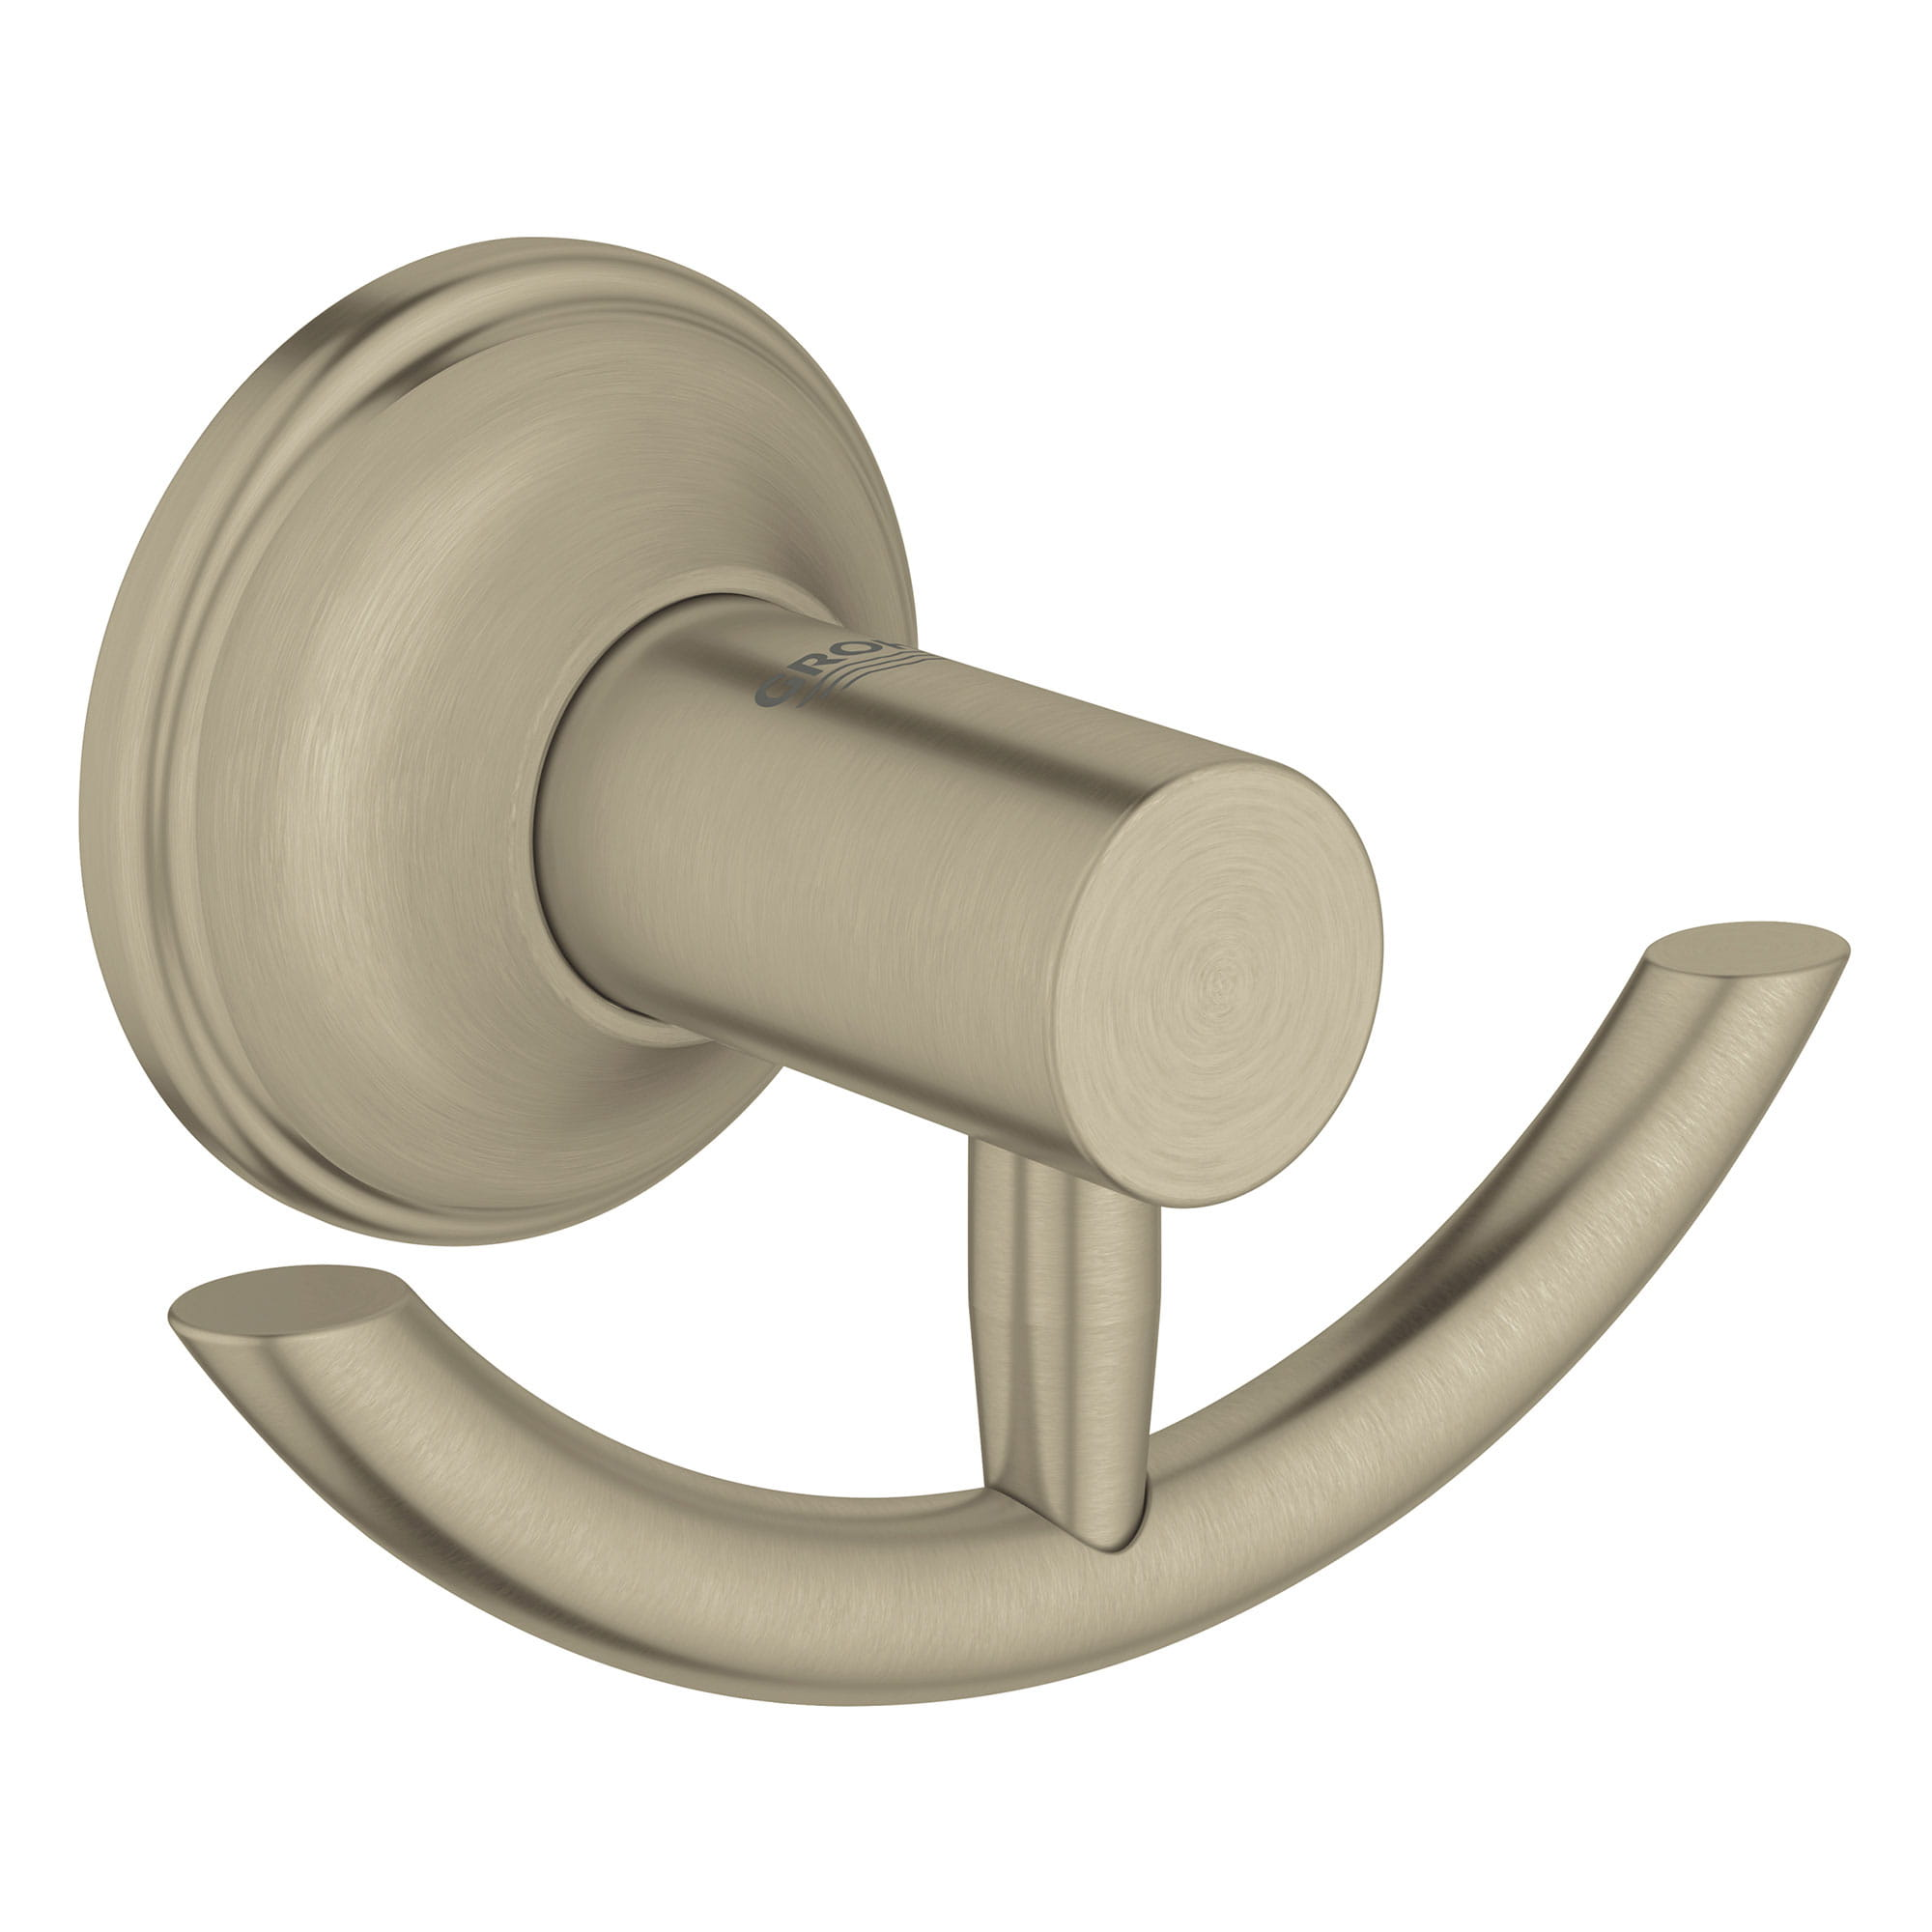 Fairborn Crochet GROHE BRUSHED NICKEL